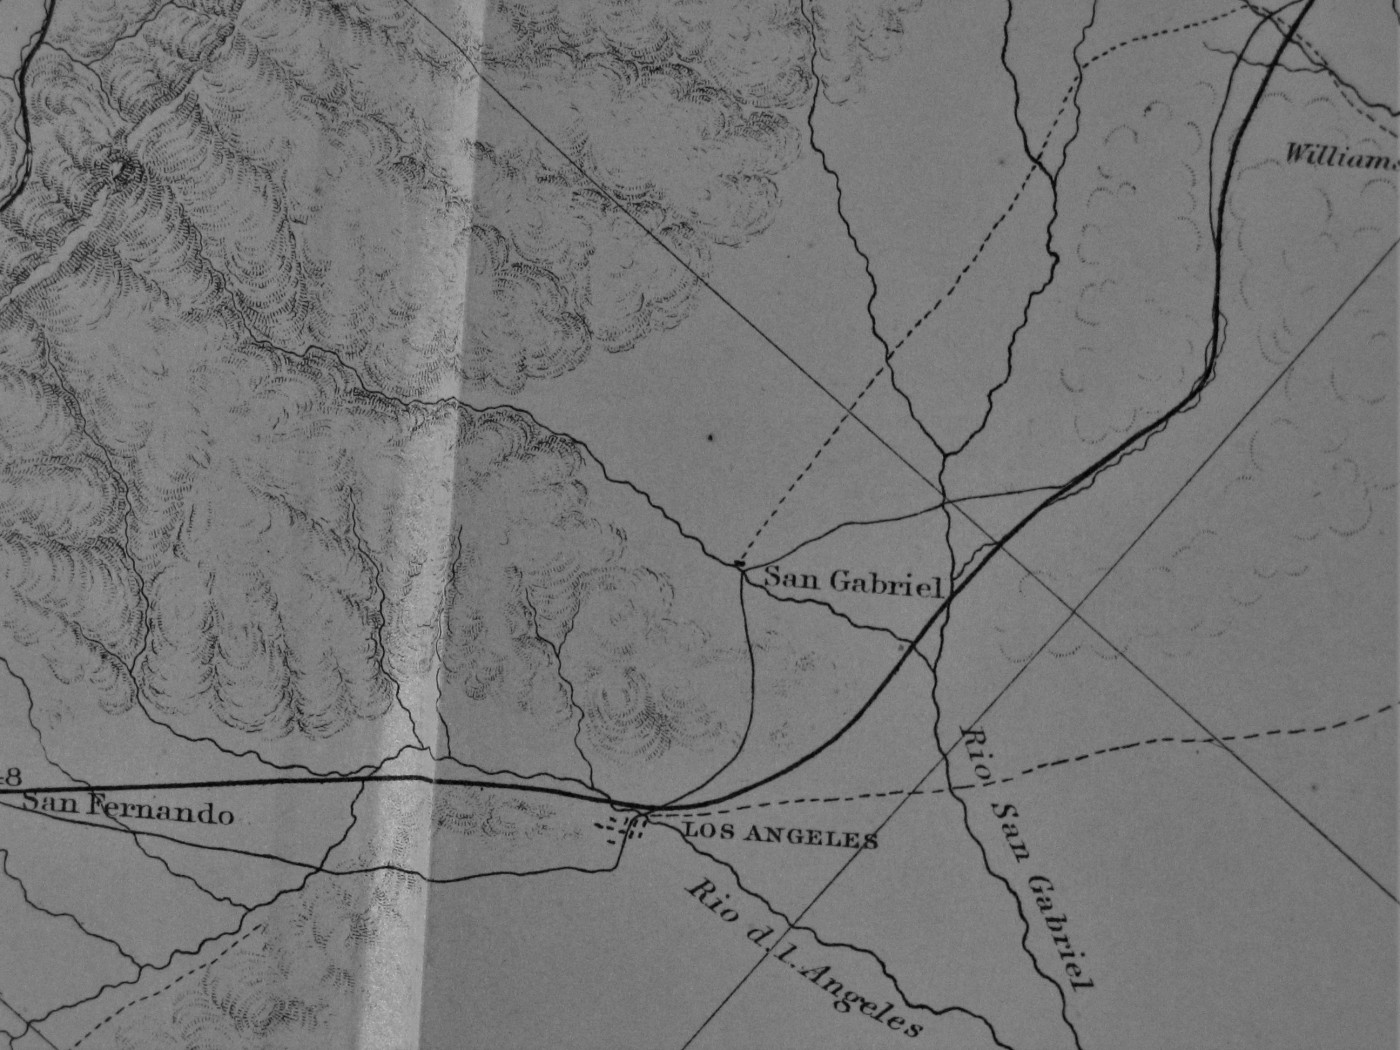 All Over The Map: An 1853 Transcontinental Railroad Survey ... San Gabriel Valley Map on antelope valley map, la county map, pico rivera, east fork san gabriel river map, south bay, los angeles, central valley map, central san diego map, south los angeles, south san francisco map, san gabriel mountains map, inland empire map, west covina map, baldwin park, orange county, hacienda heights map, san dimas, san gabriel river, diamond bar, greater san diego map, san diego, el monte, mission valley san diego map, death valley ca map, city of san fernando map, la puente map, east los angeles, santa fe dam recreation area map, west covina, antelope valley, valley of fire nevada map, sacramento valley map, temple city, san fernando valley, long beach map, los angeles map, san gabriel mountains,